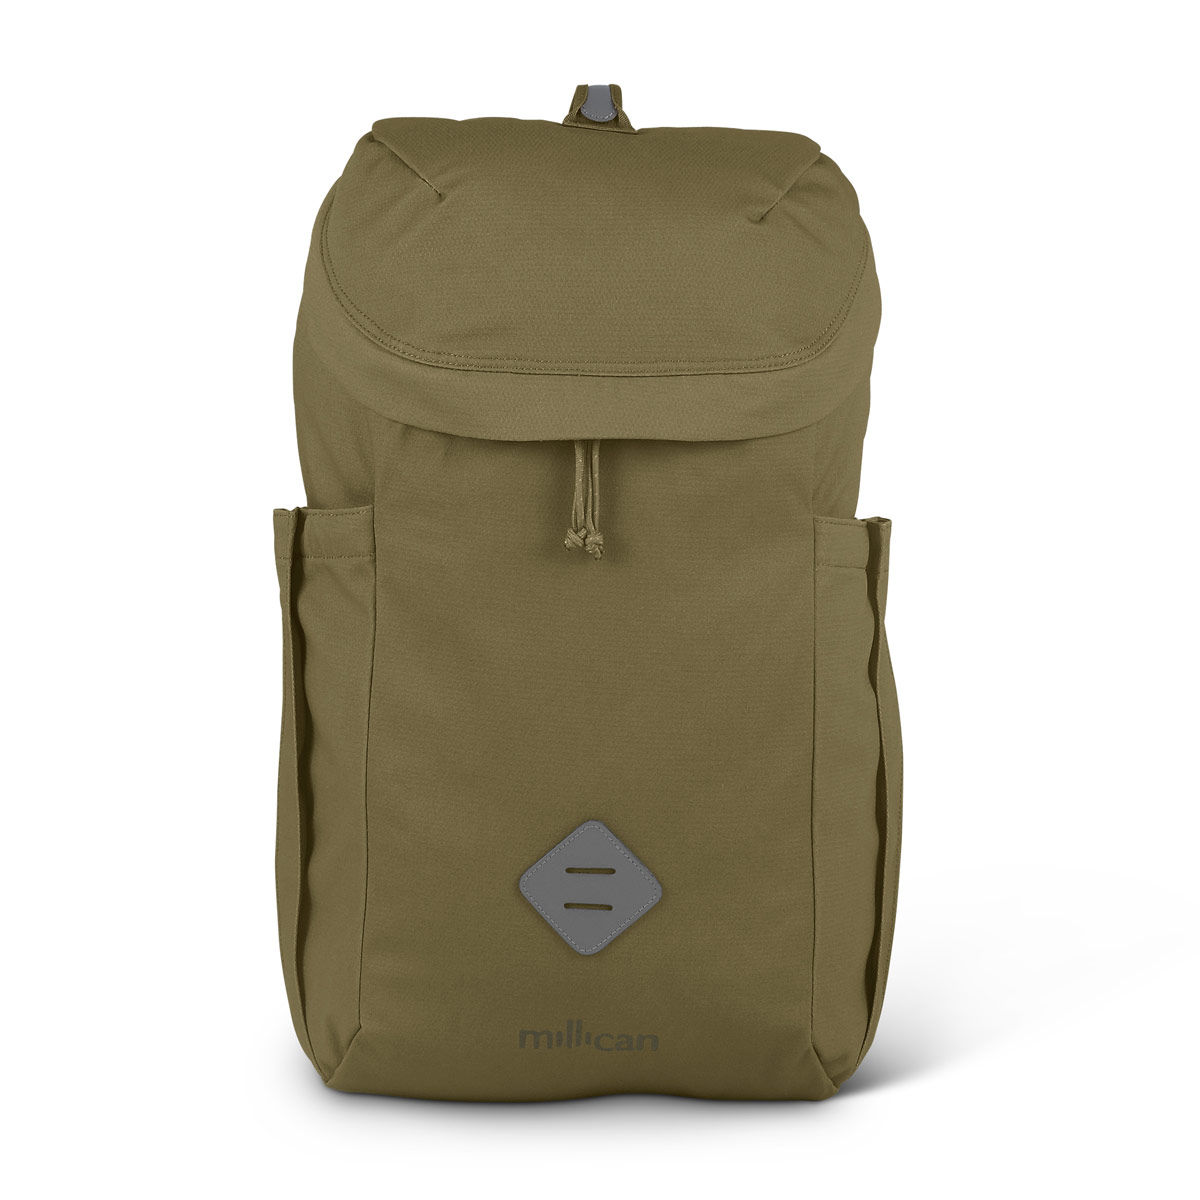 Millican Oli The Zip Pack 25L - Moss